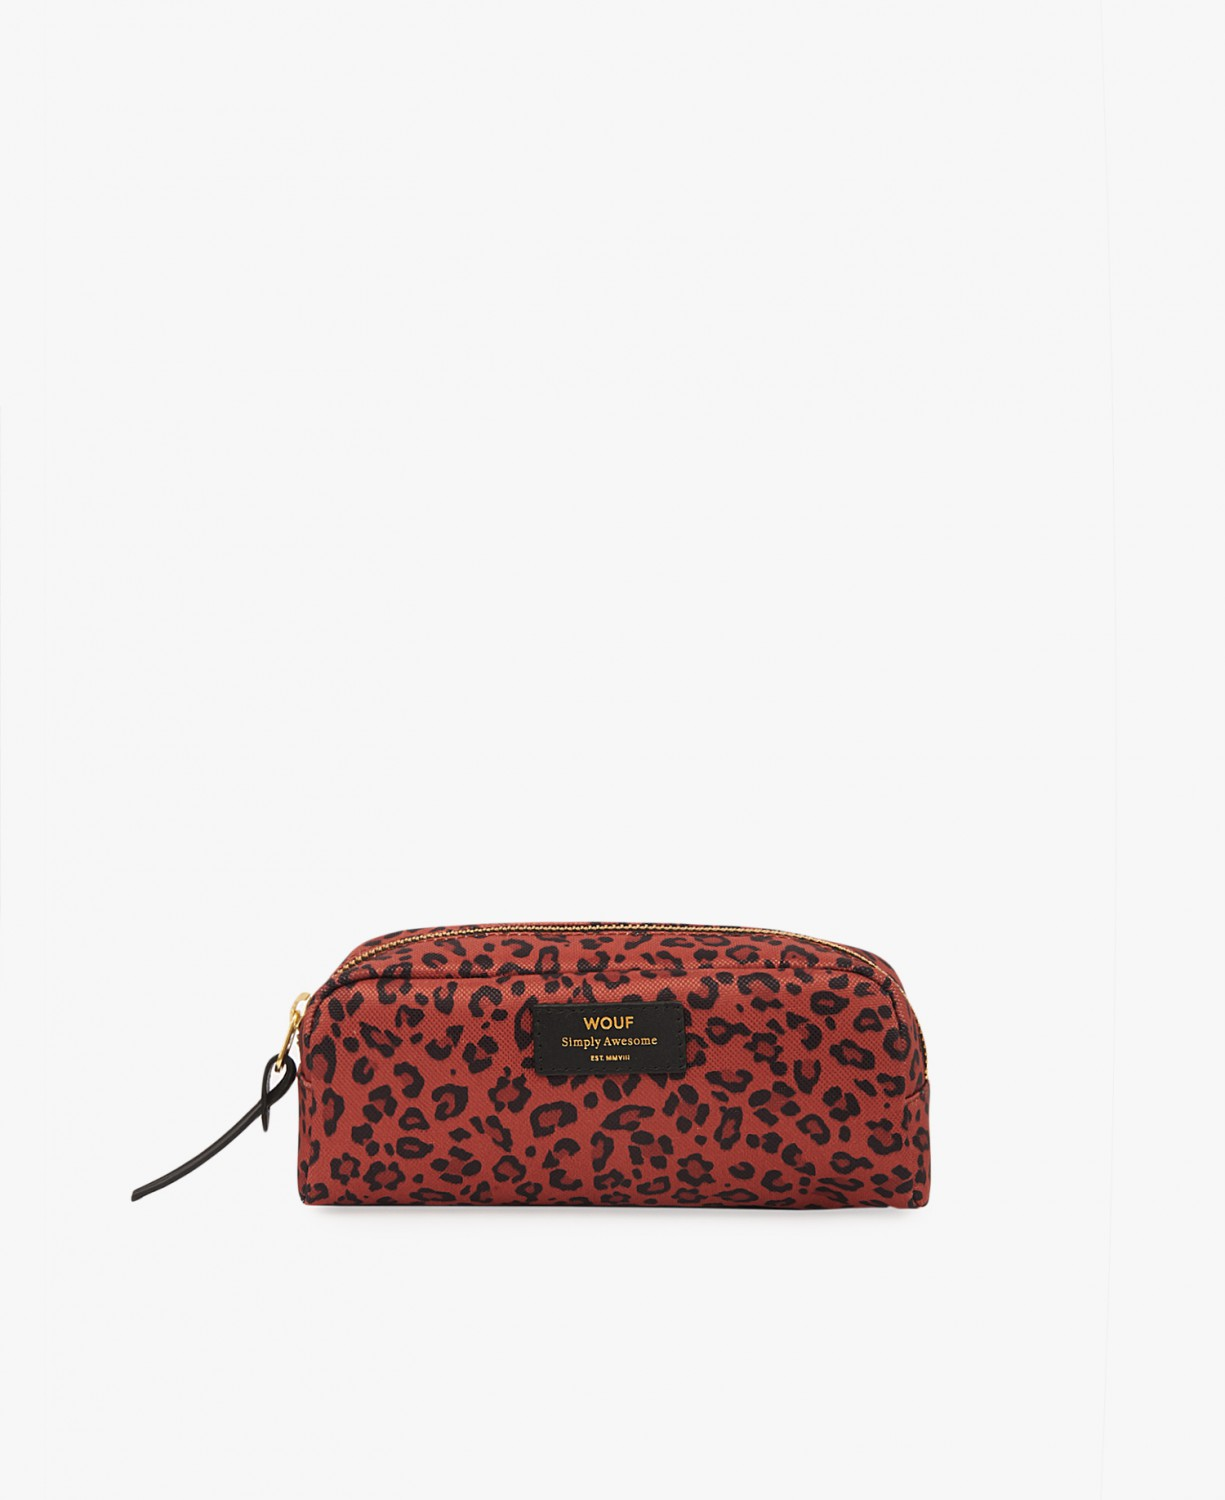 WOUF | Savannah makeup bag small